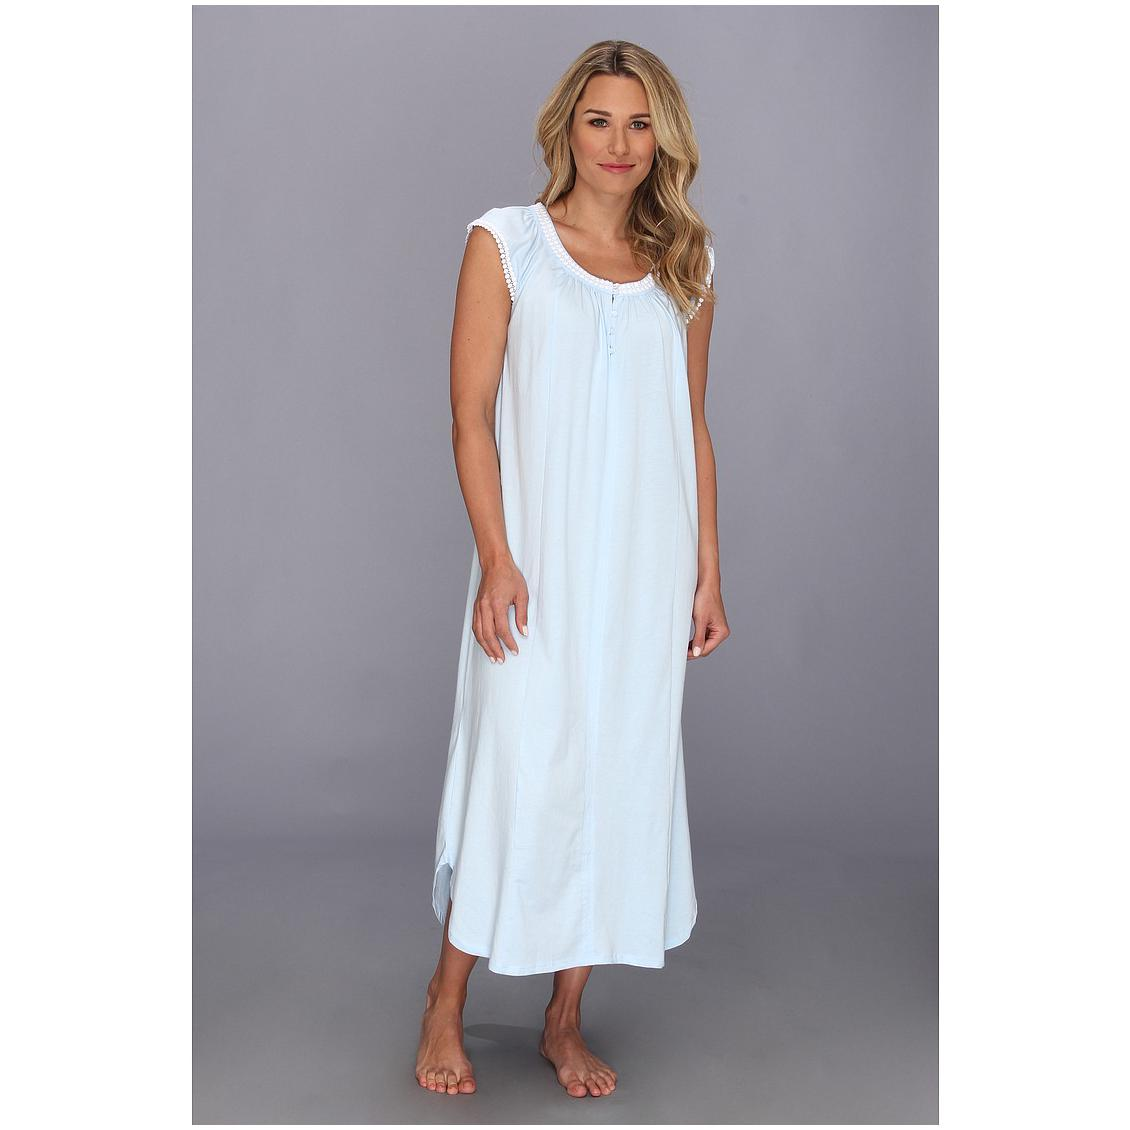 Women'S Plus Nightgowns & Clothes Review – Always Fashion